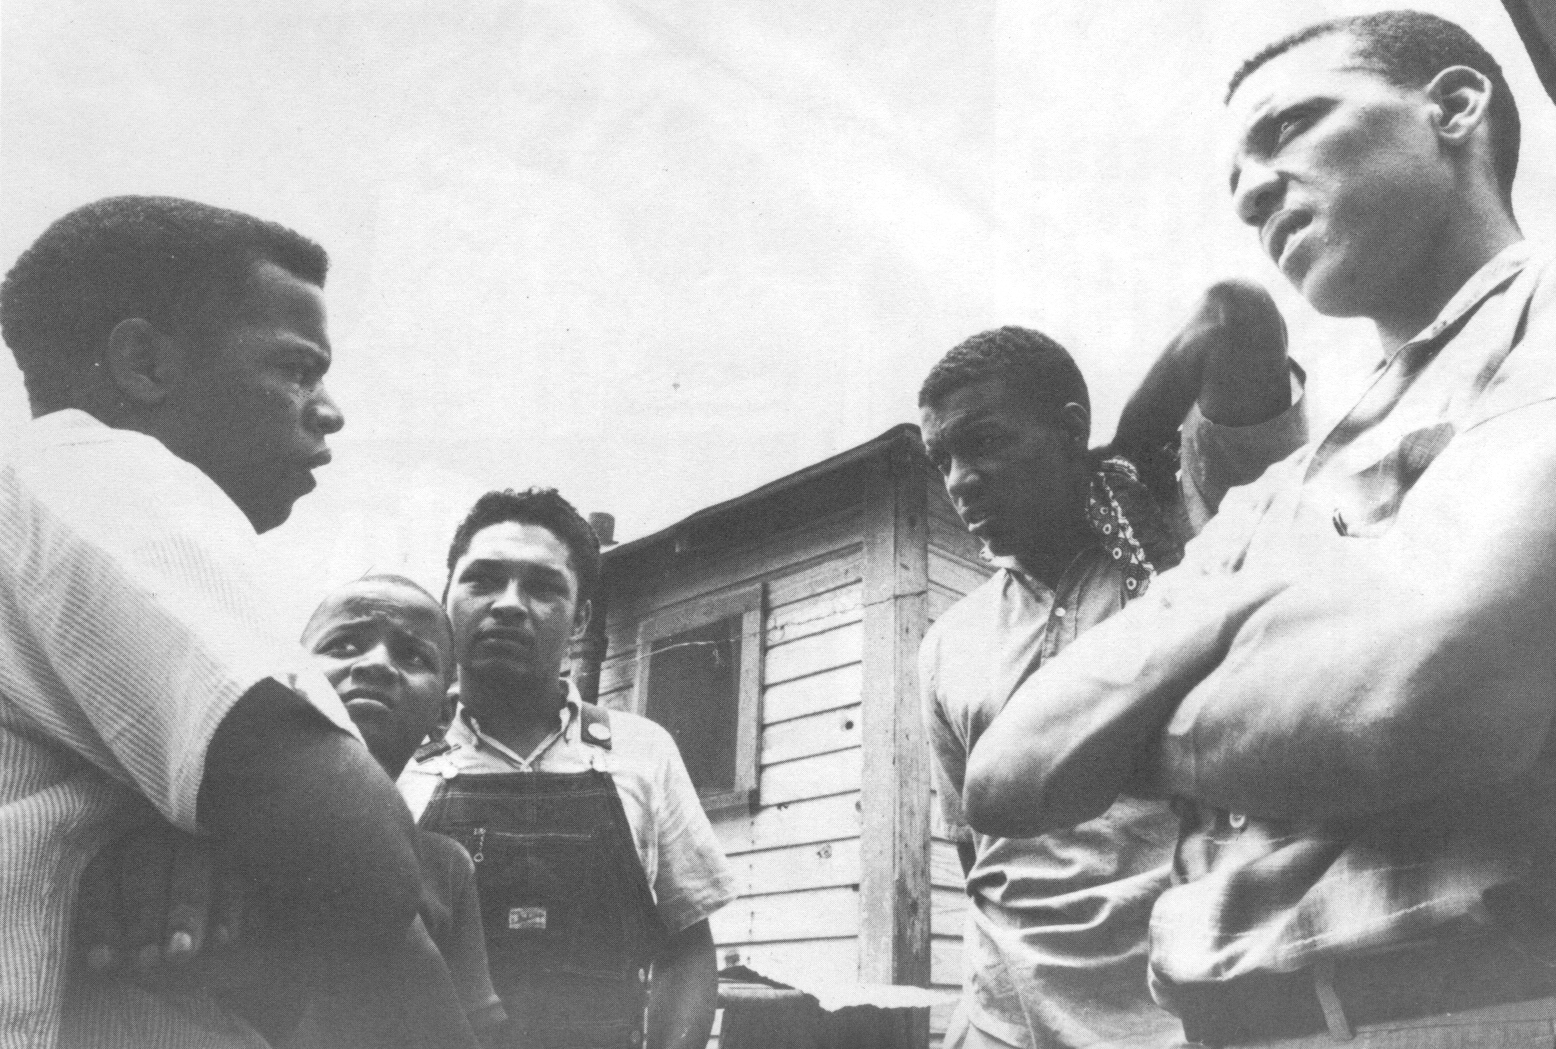 (Left to Right) John Lewis, unidentified boy, Mateo Suarez, Jerome Smith, and Dave Dennis, undated, crmvet.org